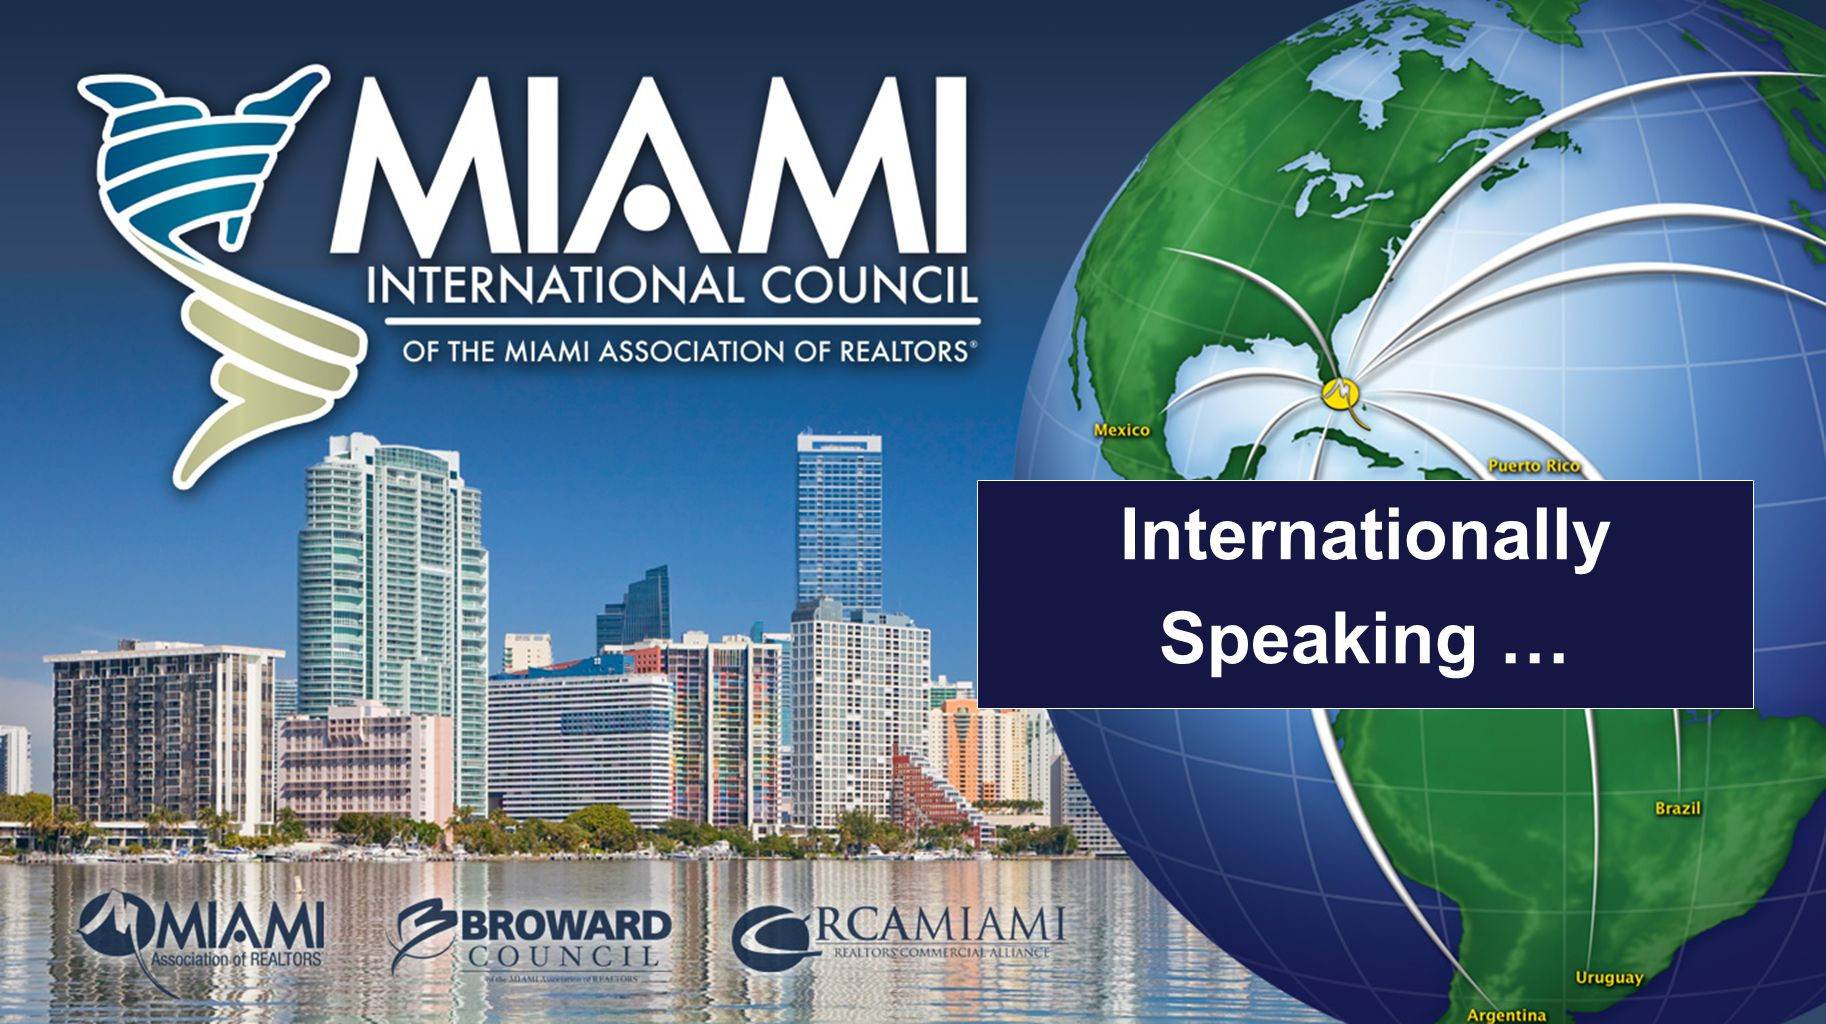 The MOST International Business in US Nearly 1 in 4 in Florida Nearly 1 in 3 in Florida is Miami Last year Miami/Ft.